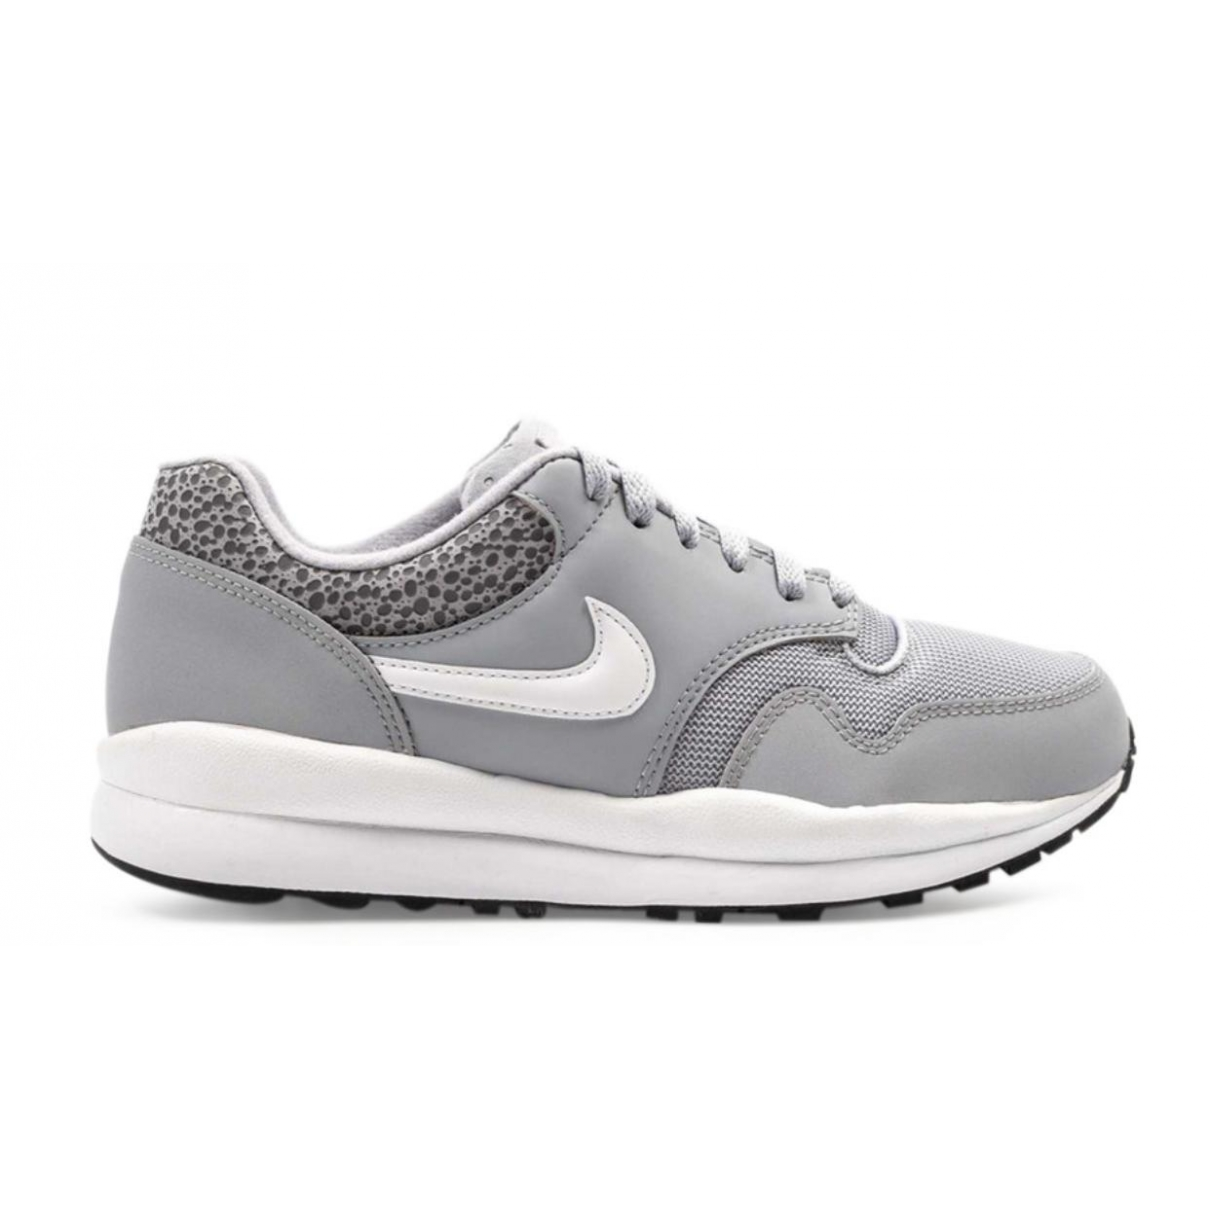 Nike Air Safari Grey Cloth Trainers for Women 7.5 US